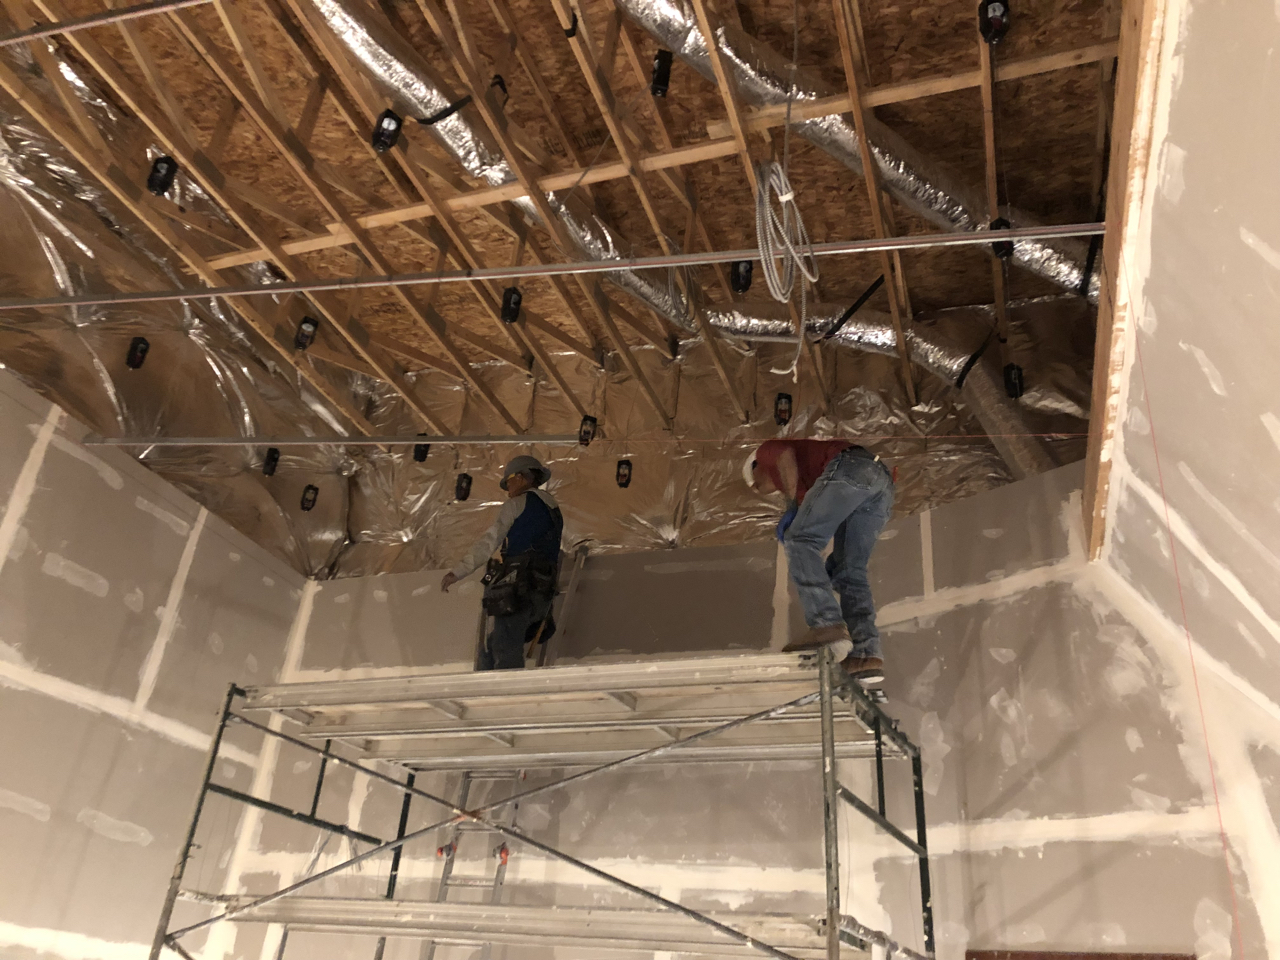 The crew started by hanging tracking room 1 as it was a rectangle and level, now they are moving on to control room 1 which is a sloped ceiling and not quite so full of right angles.